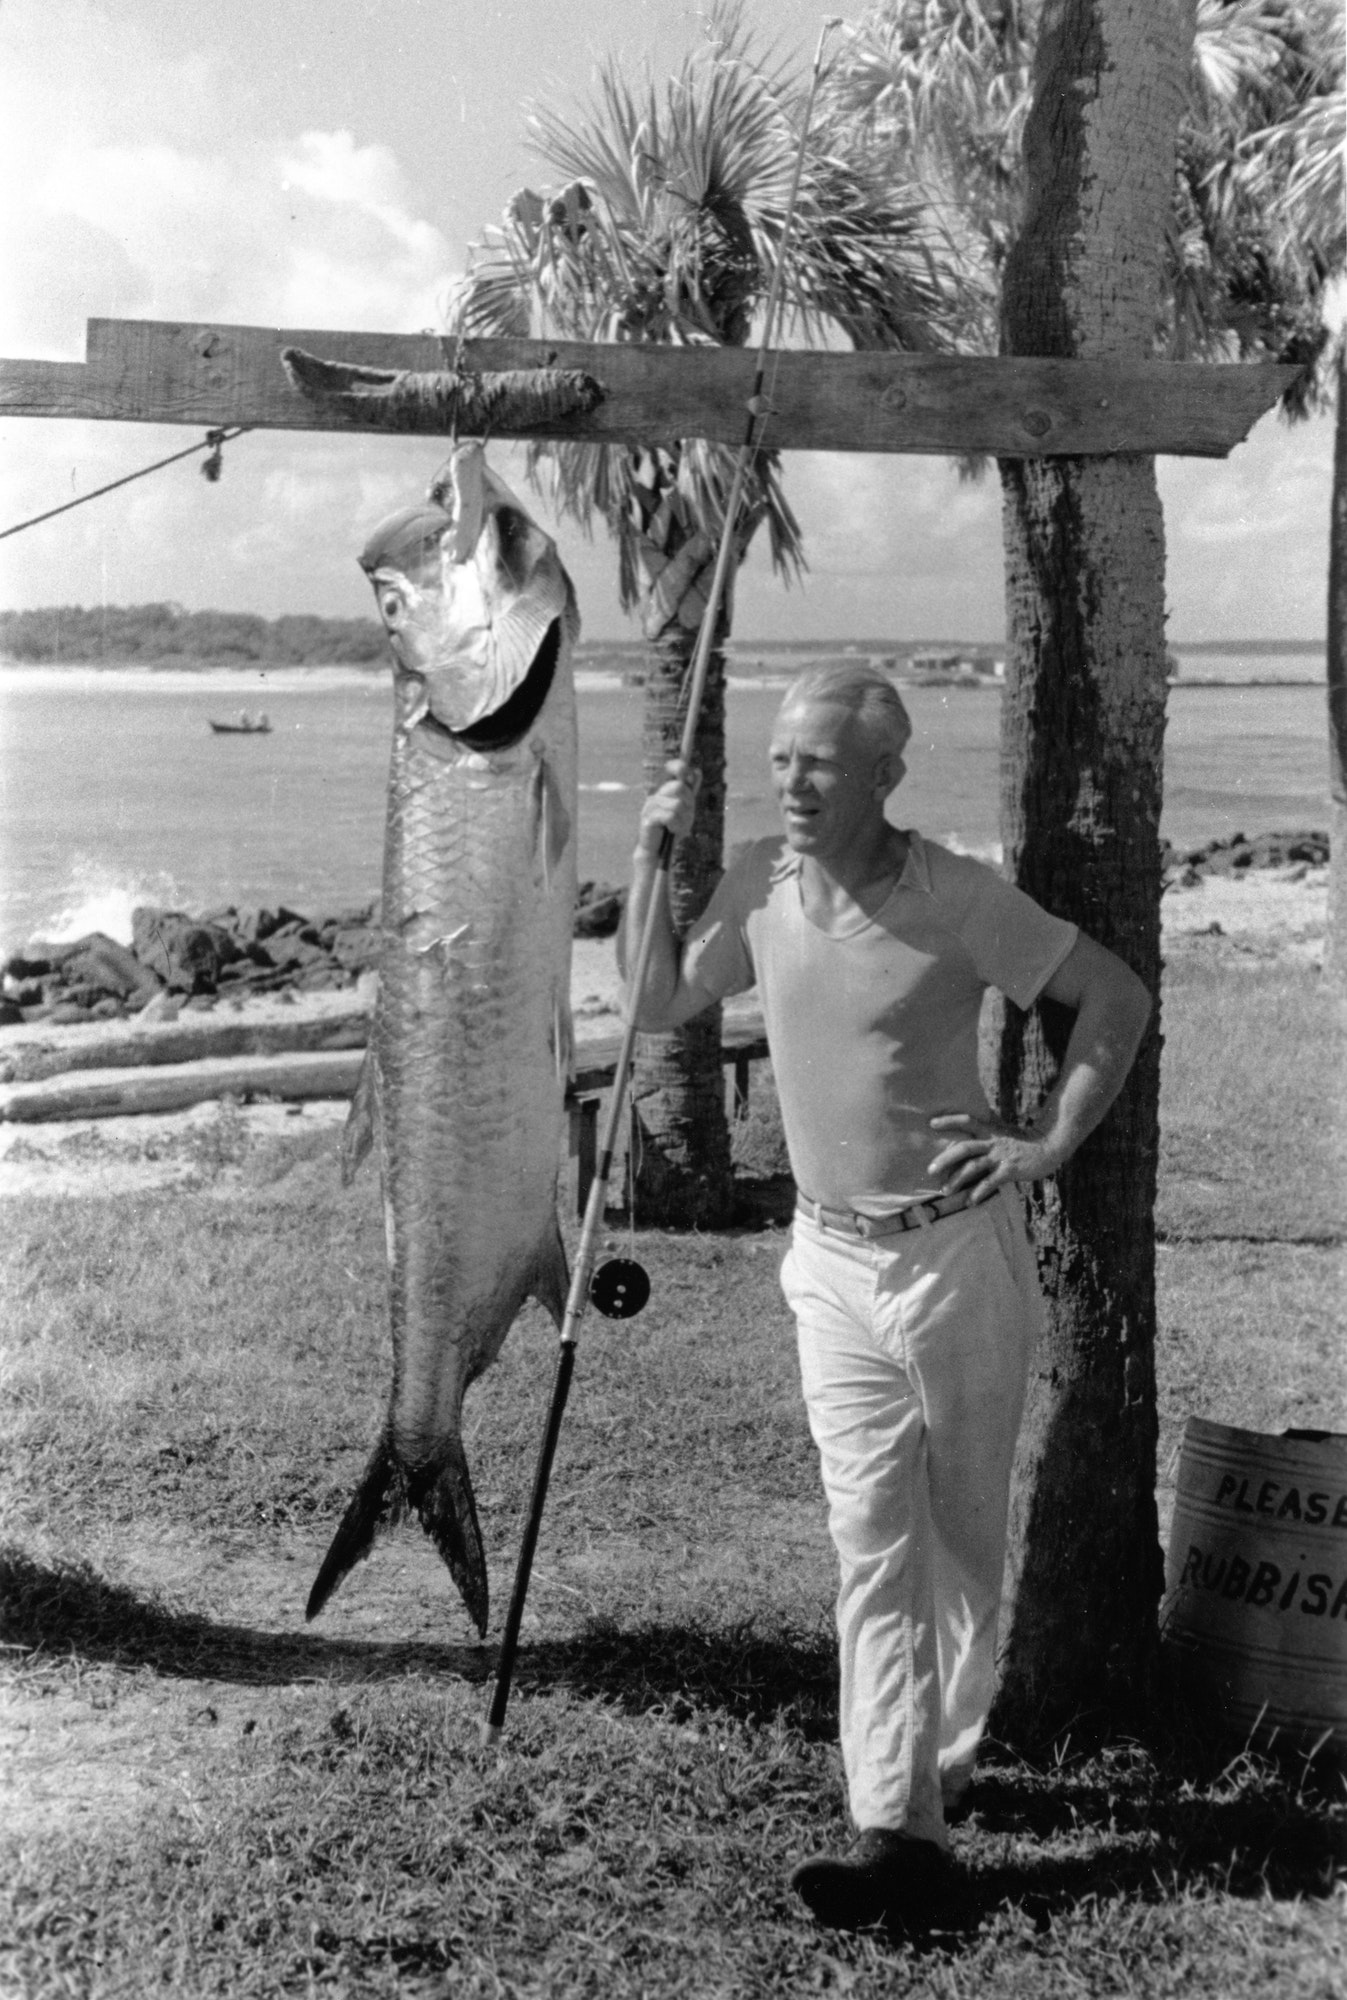 historical photo from mid-1930s of man displaying a massive tarpon caught fishing at the inlet